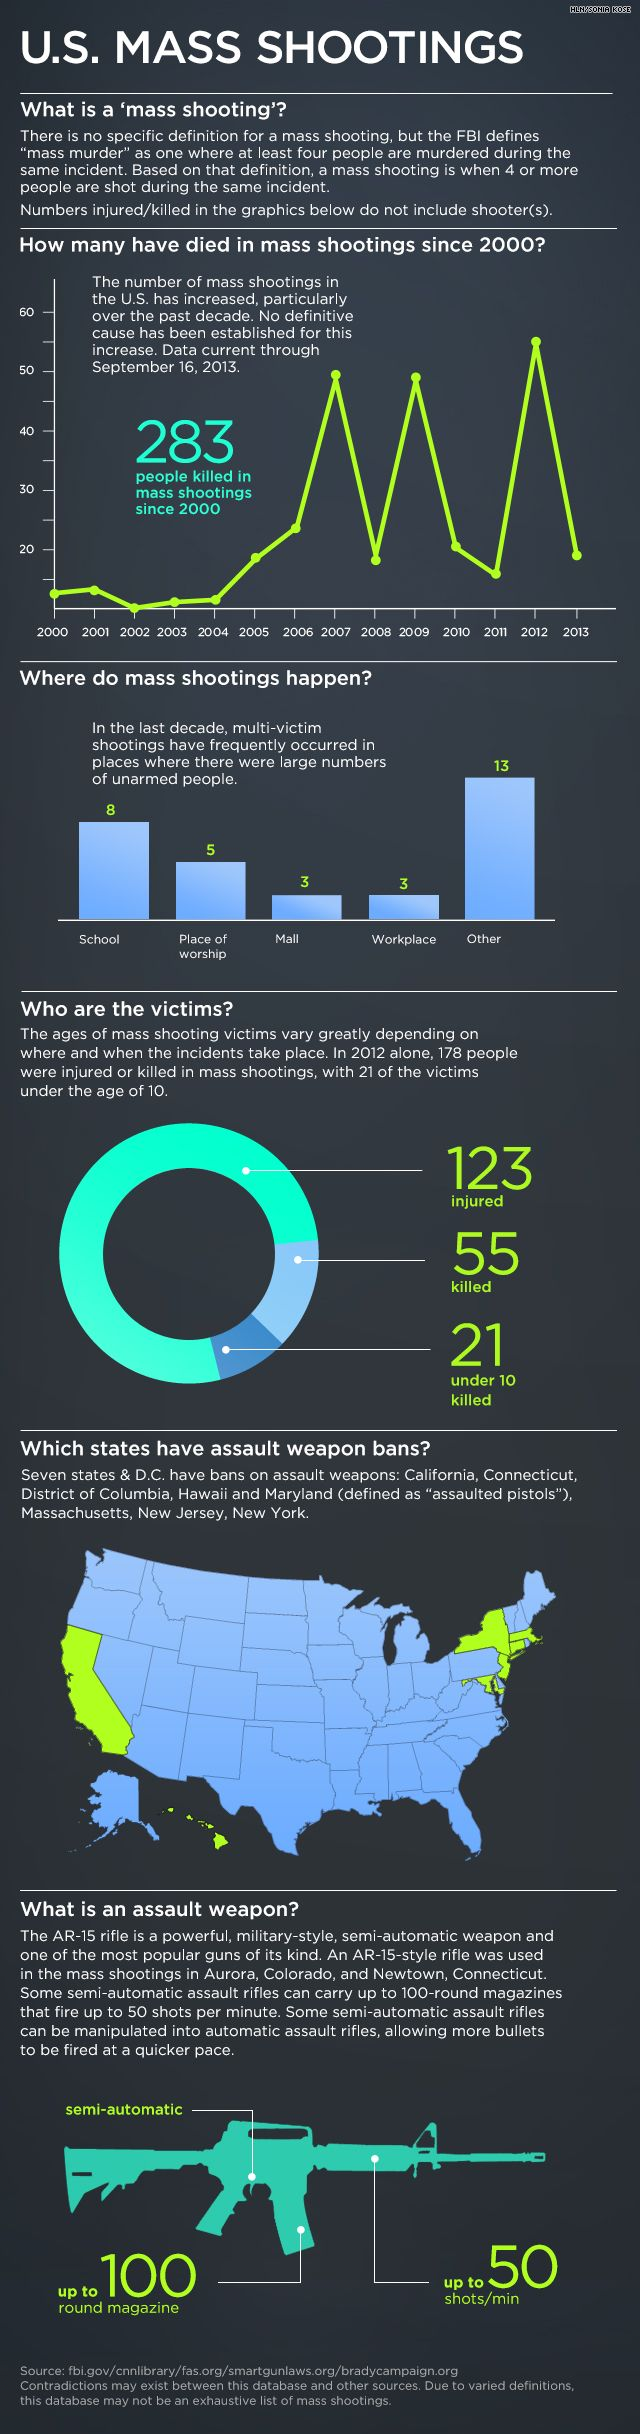 Infographic: Mass shootings in